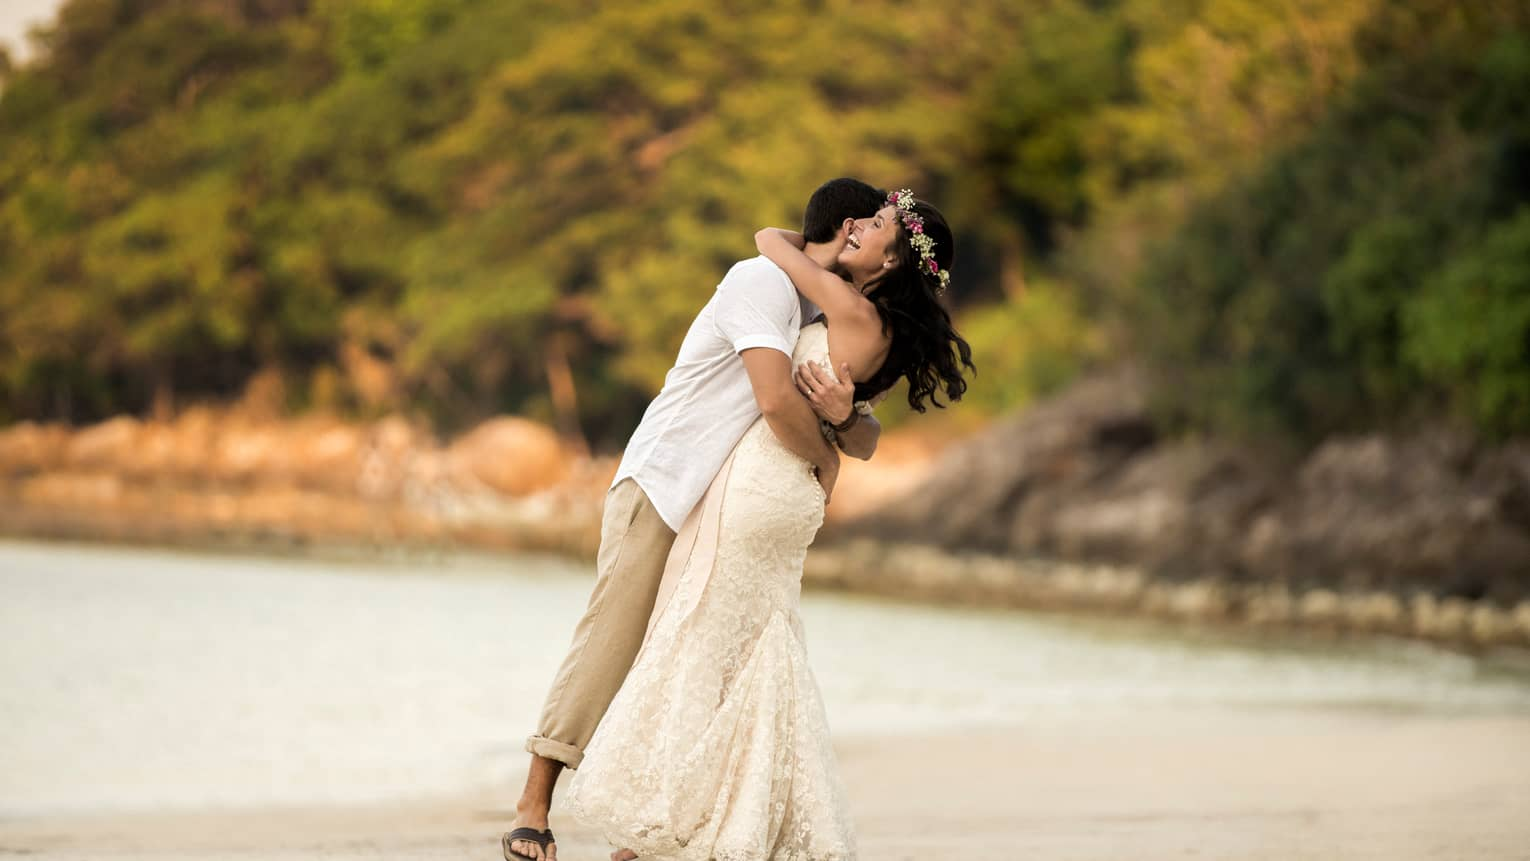 Man in white shirt and khaki pants, woman in long white wedding gown and flower crown embrace on the beach